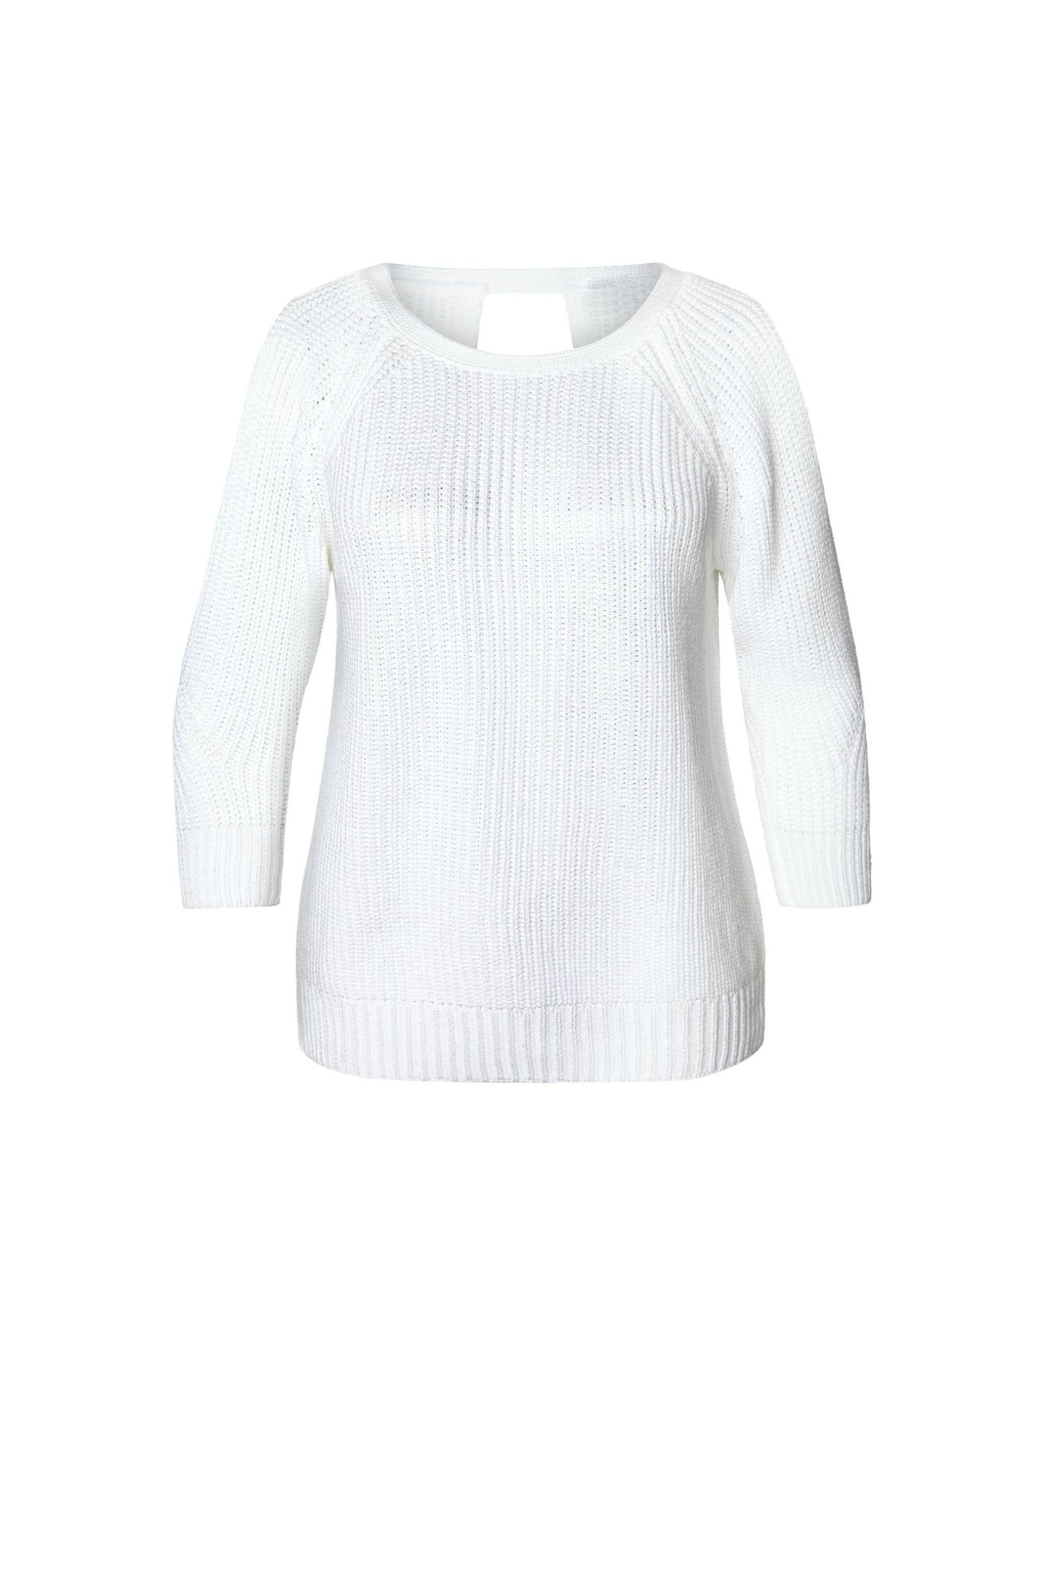 Dex Open To It Sweater - Main Image